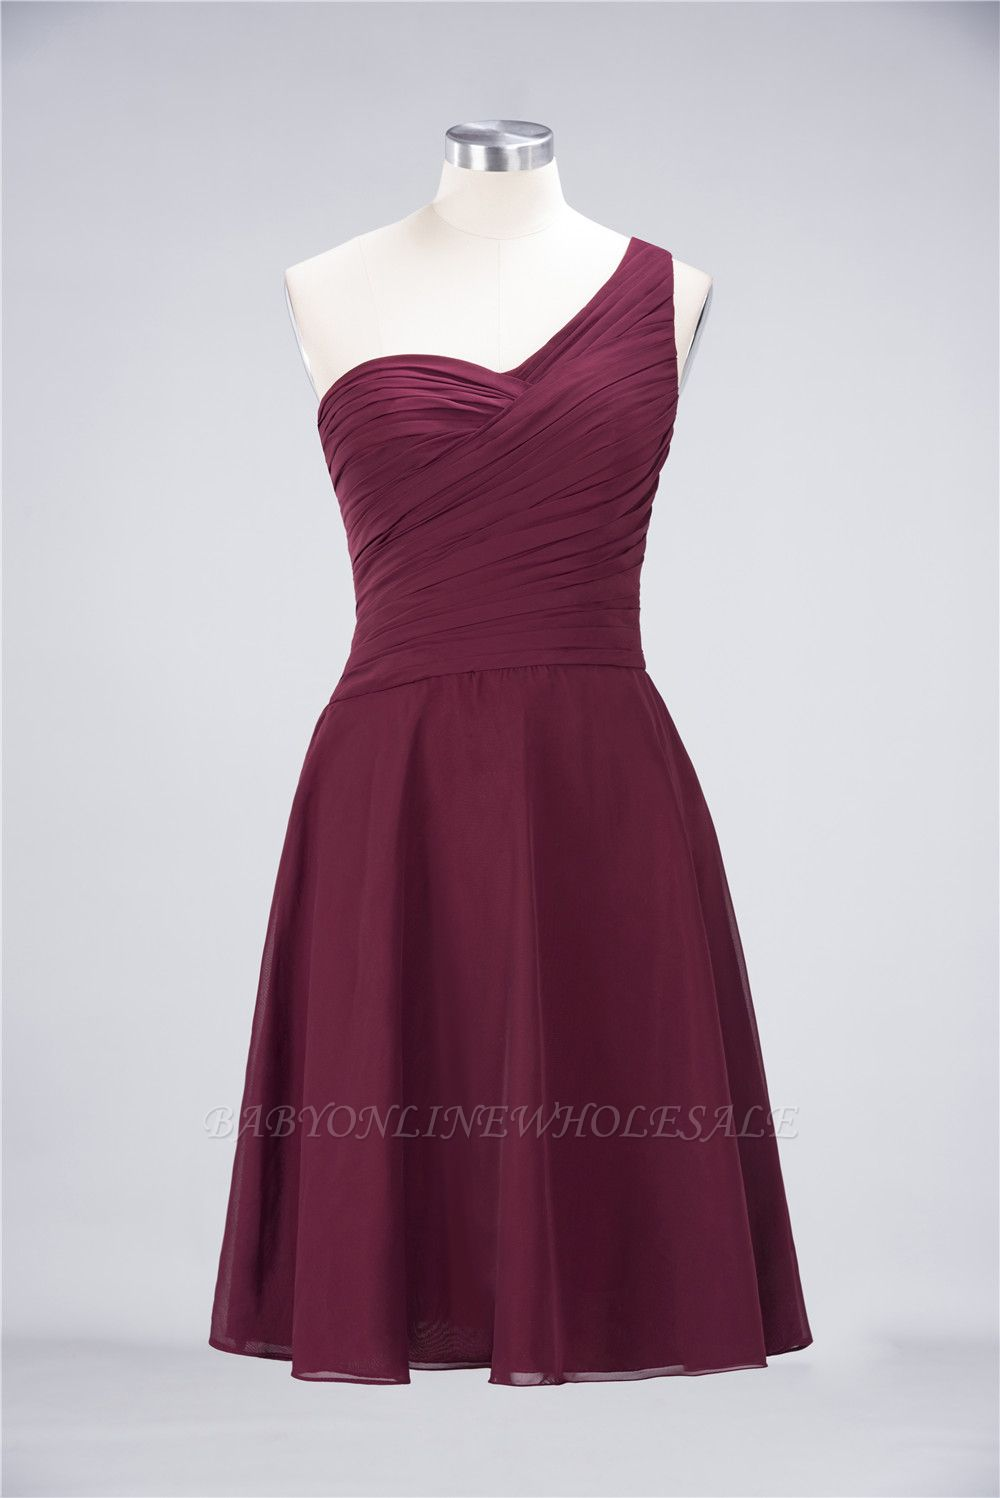 Chiffon A-Line One-Shoulder Sweetheart Sleeveless Short Bridesmaid Dress with Ruffles